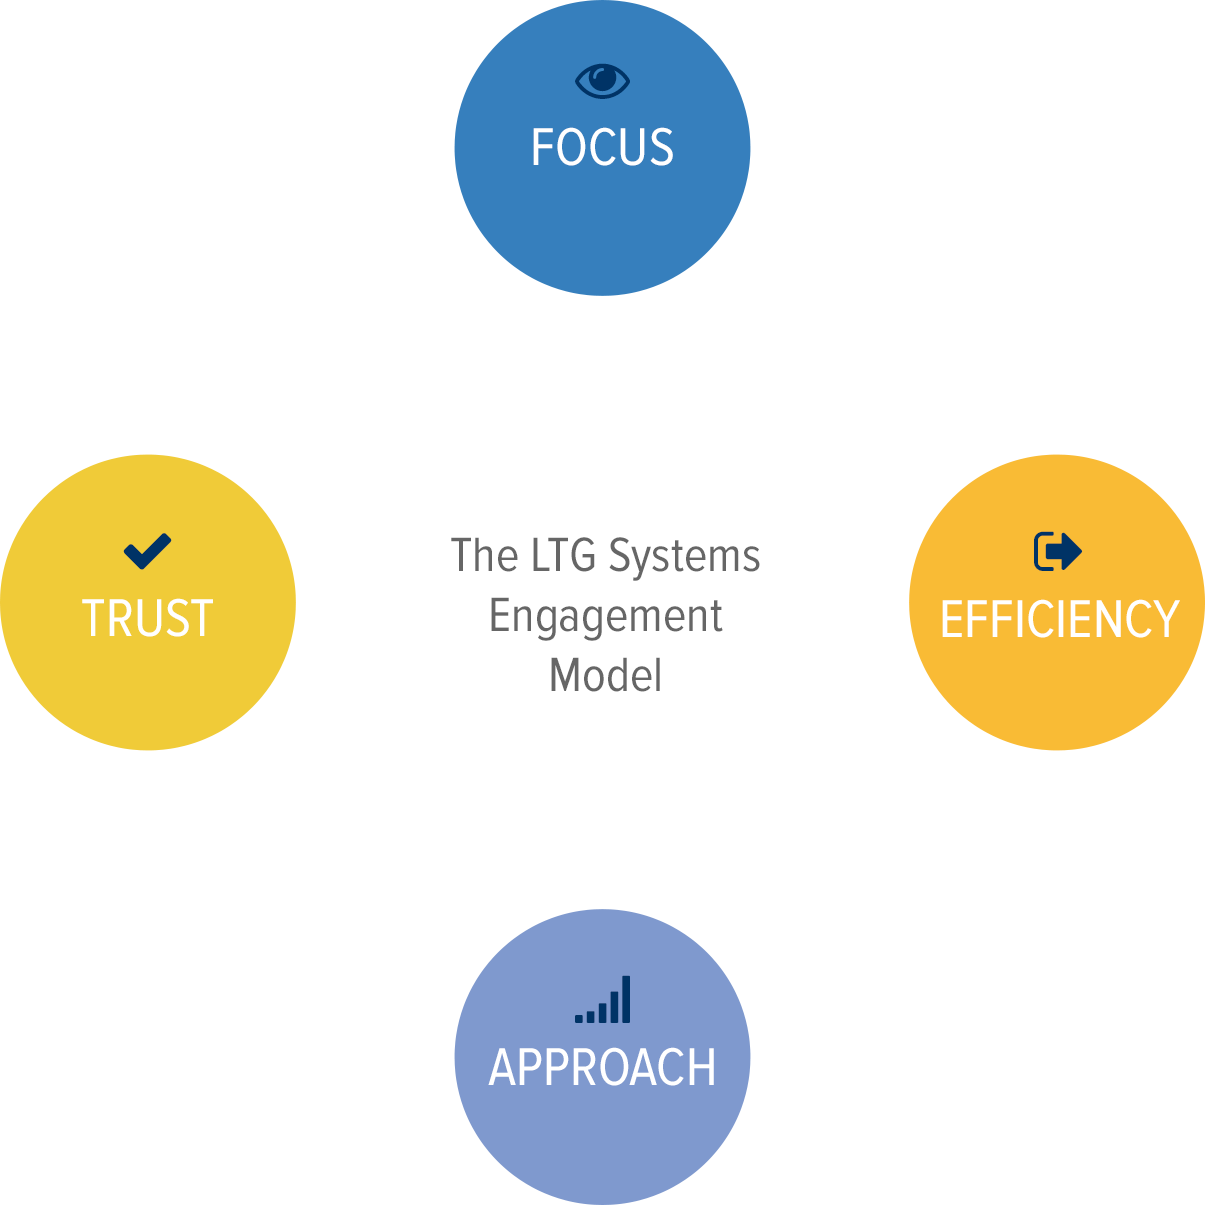 The LTG Systems Engagement Model